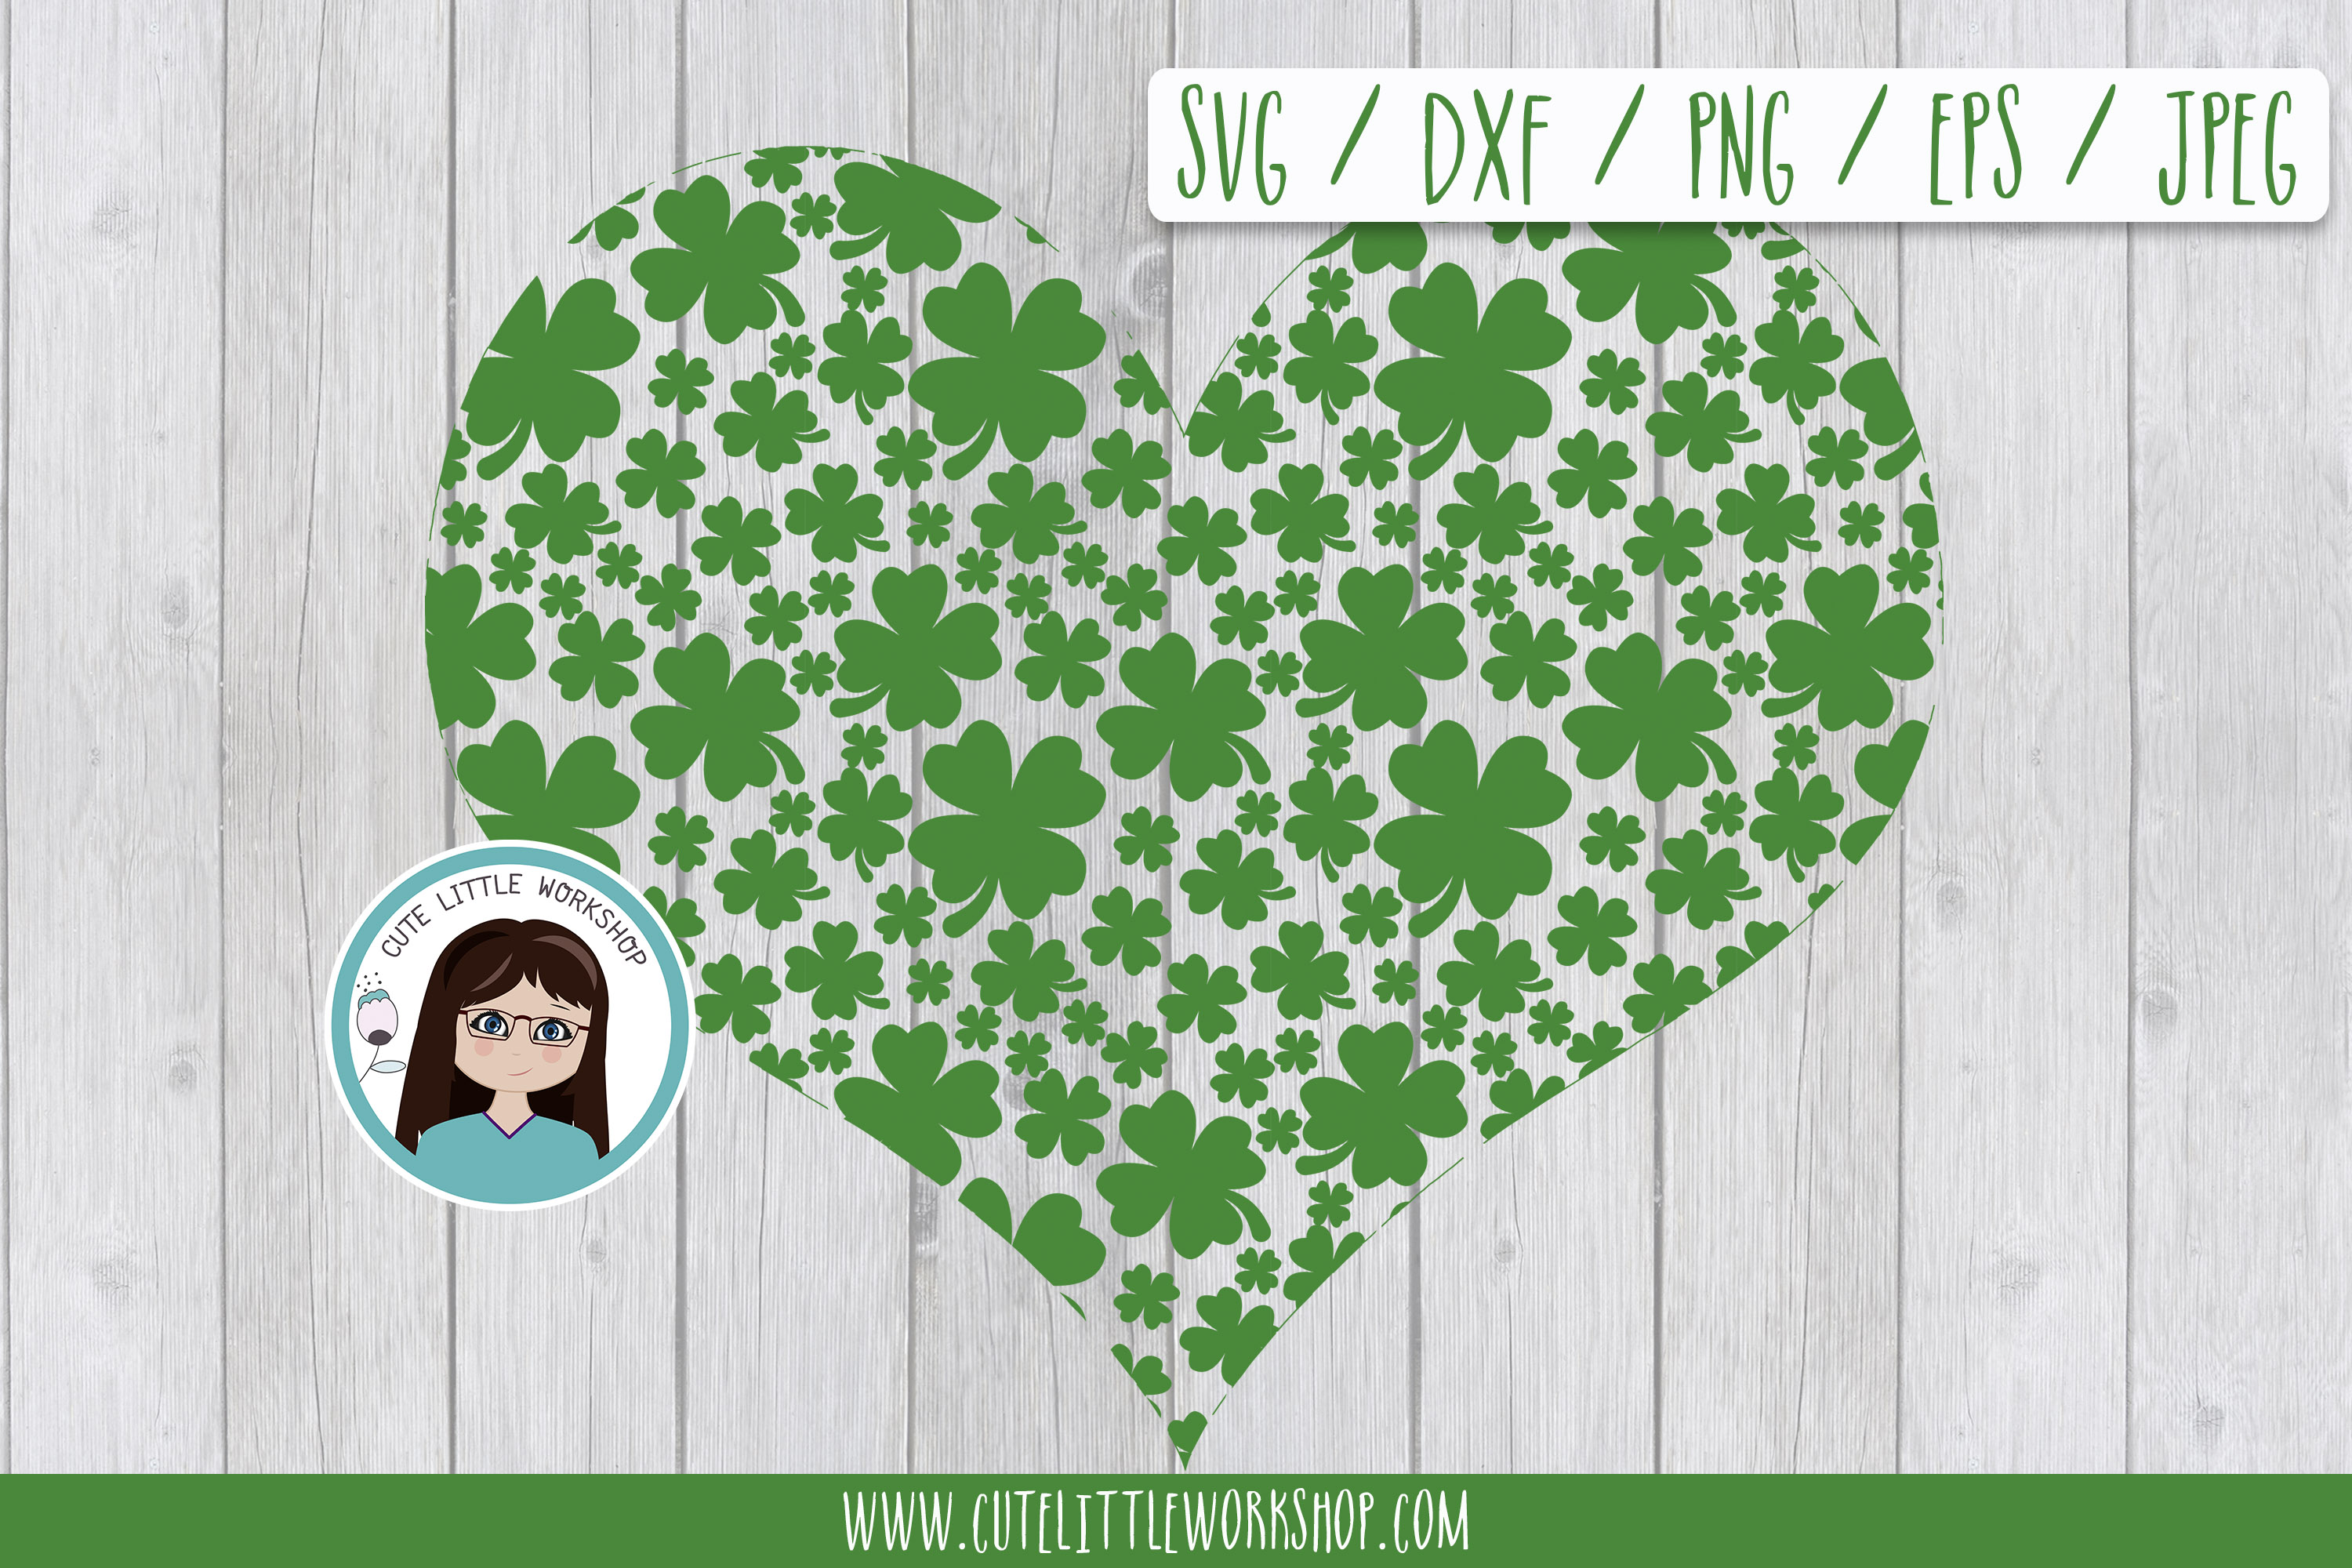 St. patricks's heart SVG DXF PNG JPEG EPS example image 1